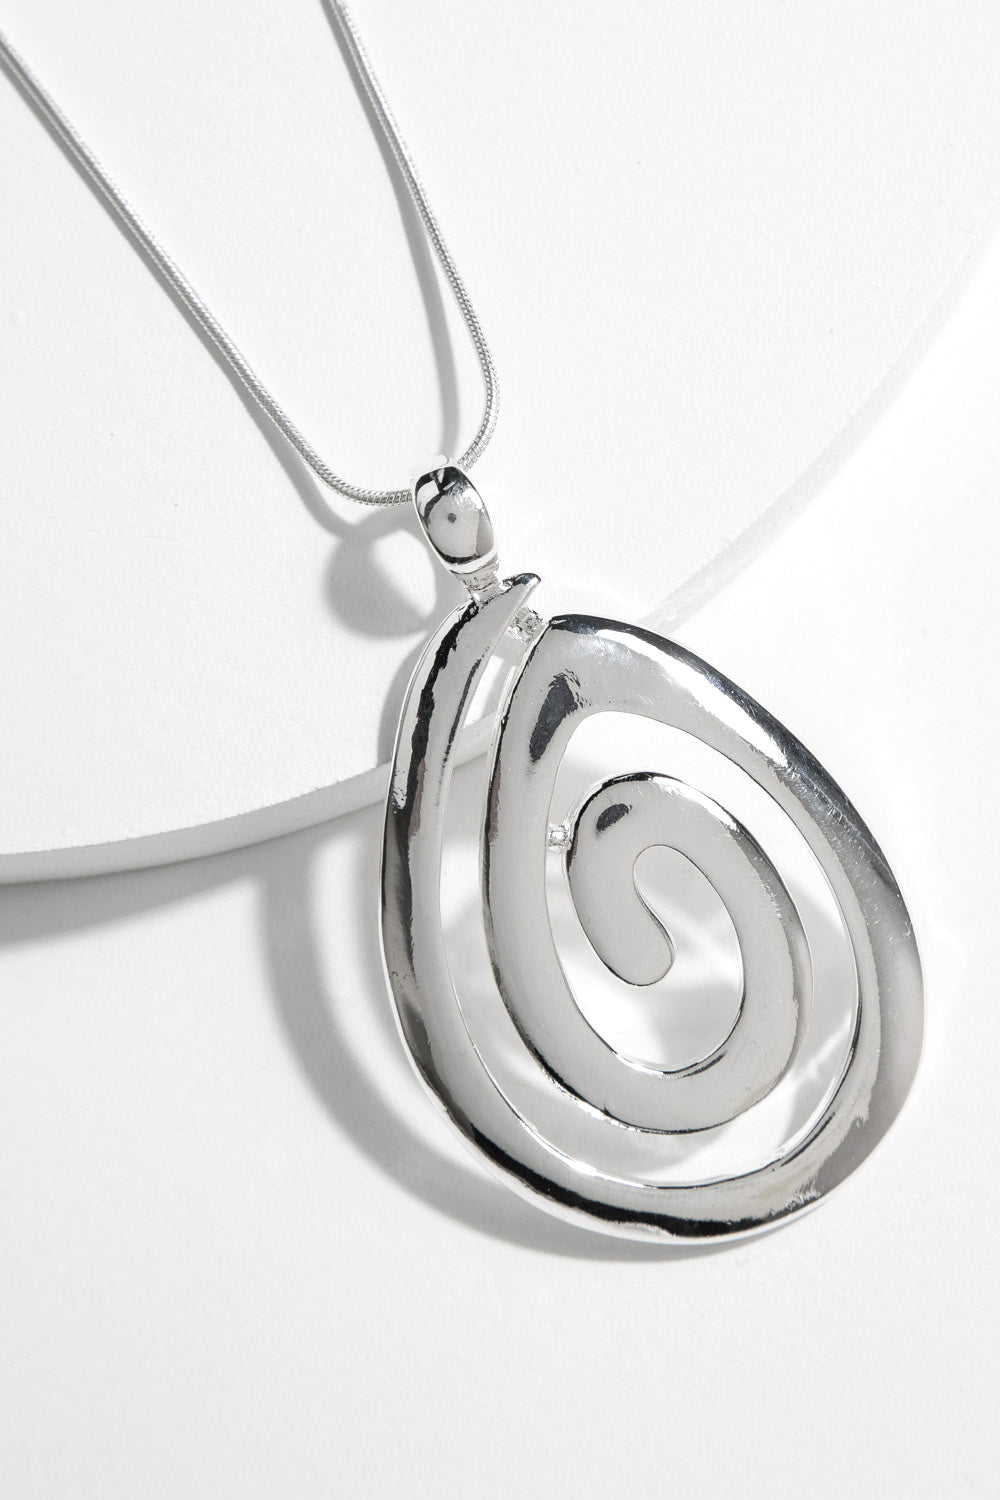 Type 4 Charming Stillness Necklace